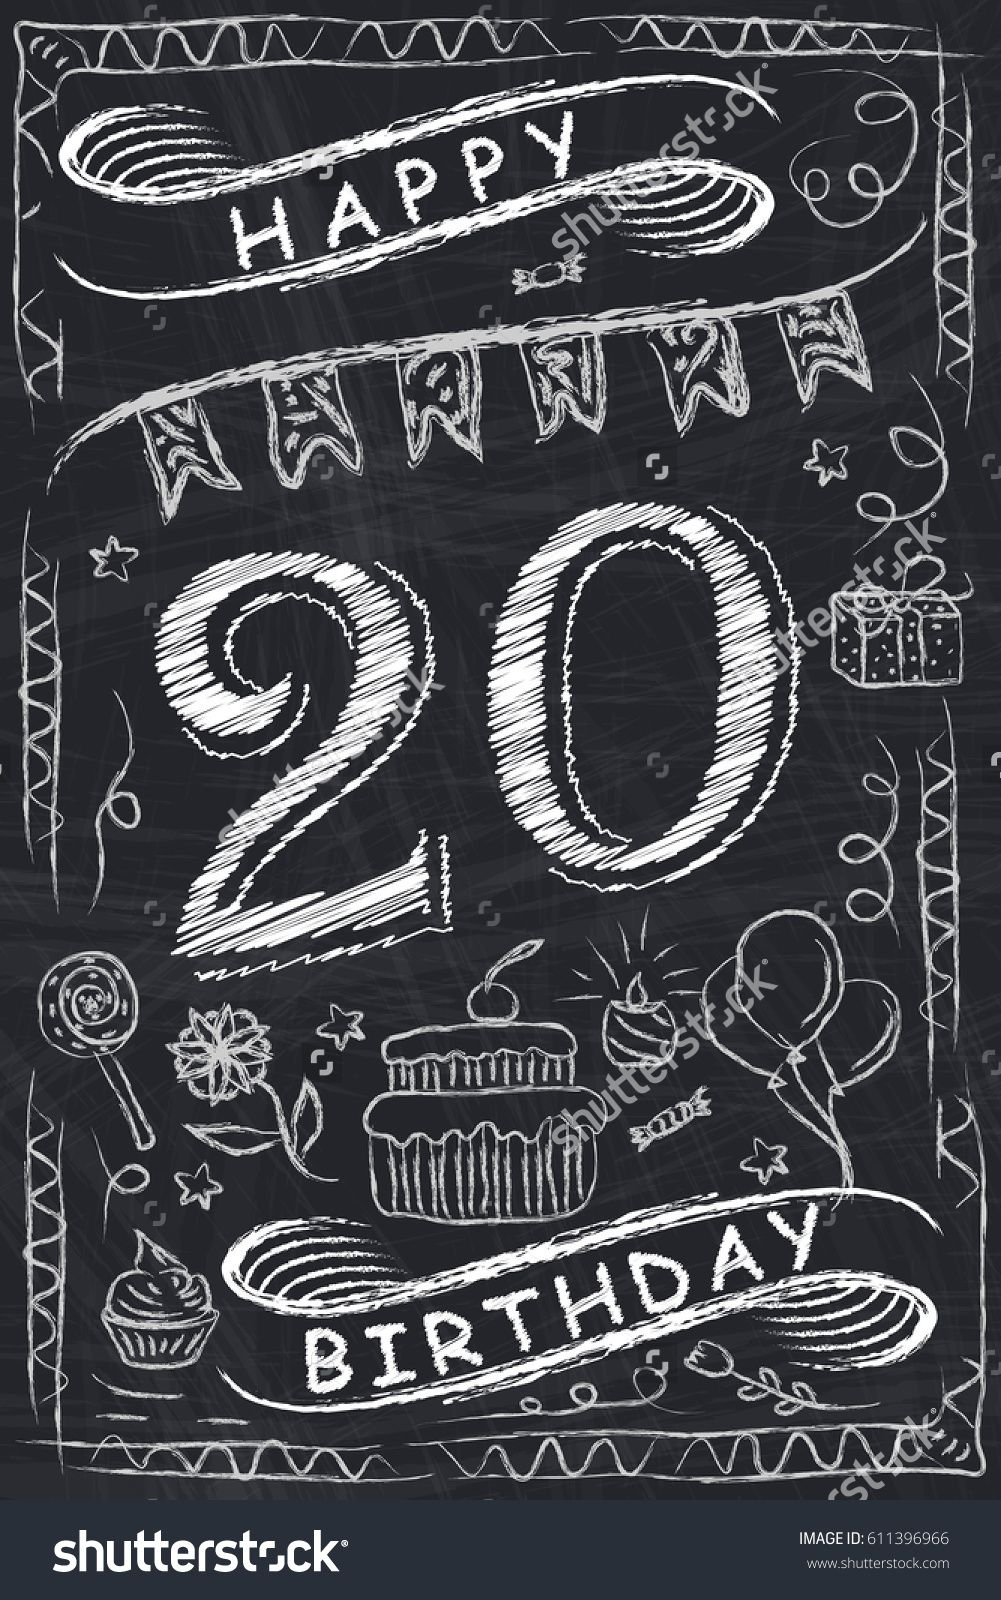 Anniversary Happy Birthday Card Design On Chalkboard 20 Years